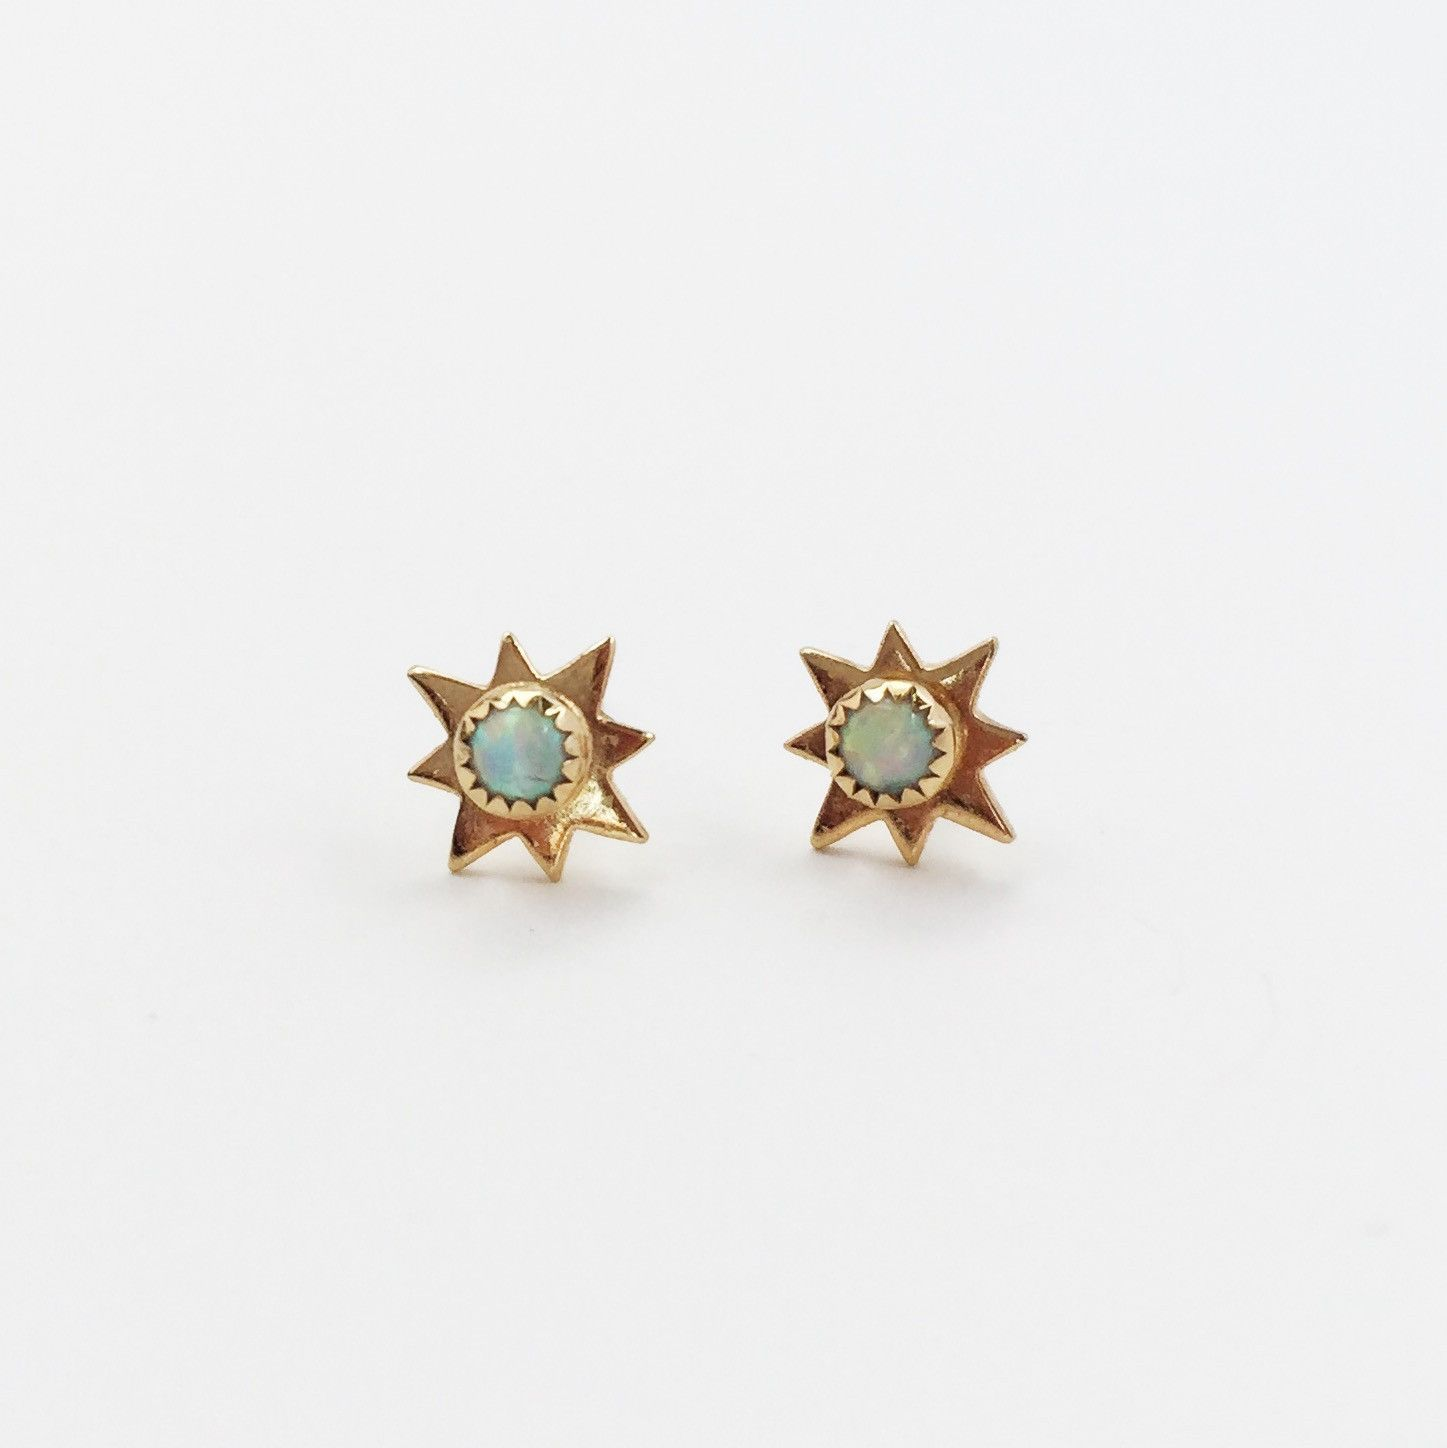 daily elizabeth wear earrings vp shopbop cole strieker htm v